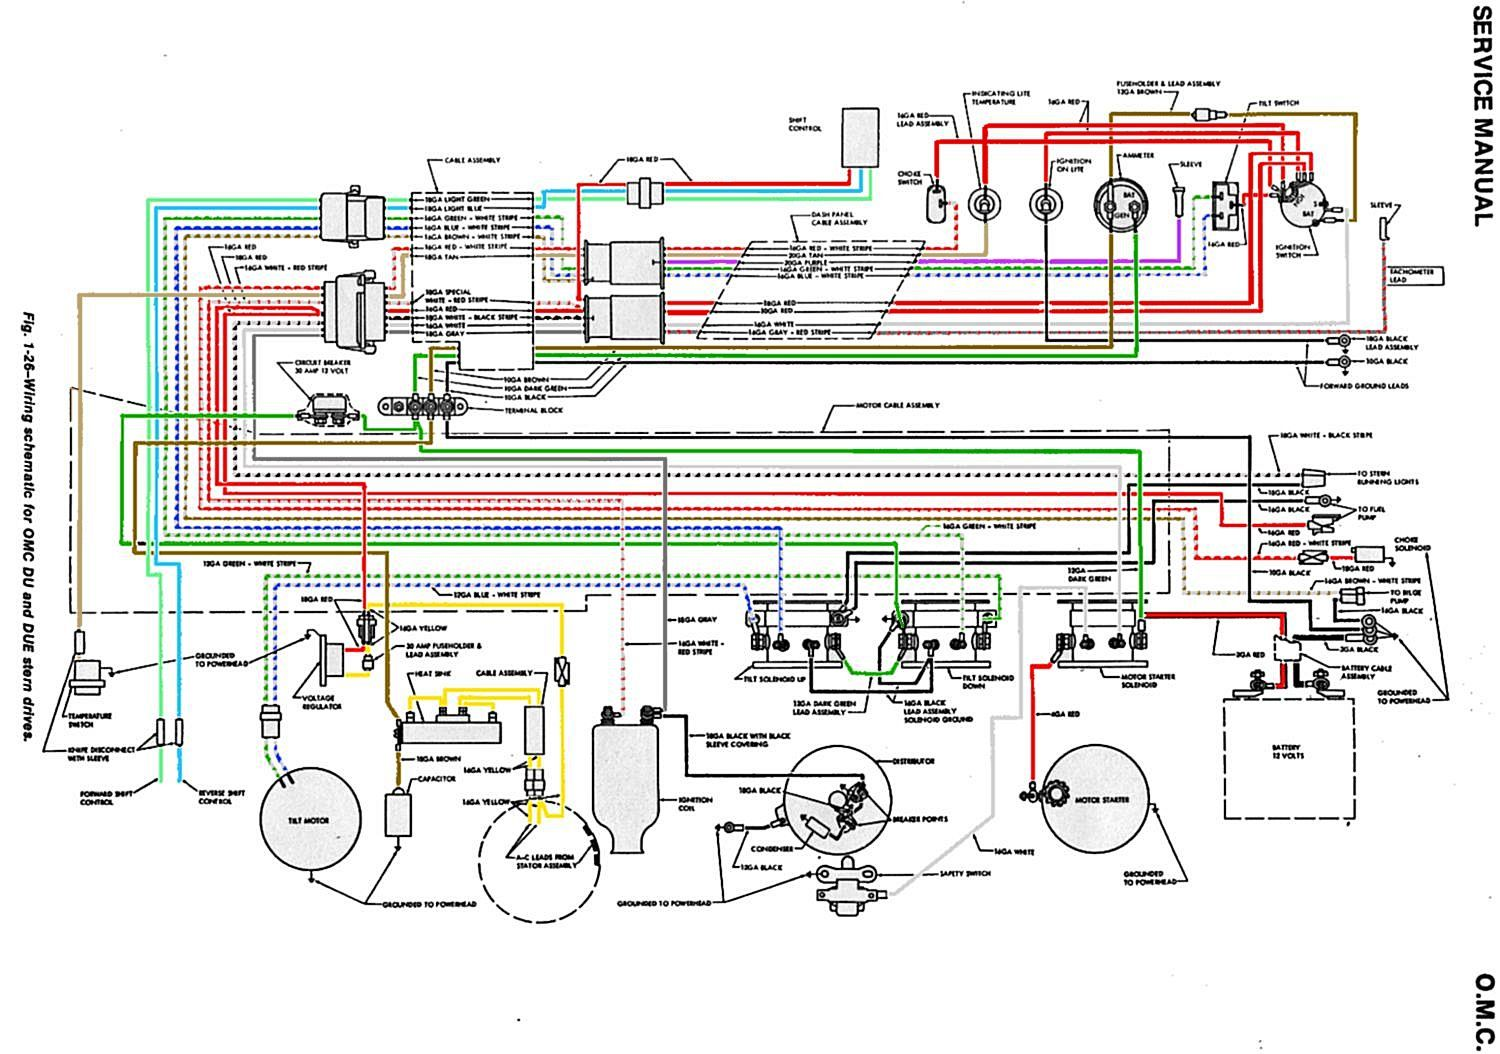 65 68_OMC_Wiring_Schematic omc boat technical info wiring diagram for boat at bayanpartner.co